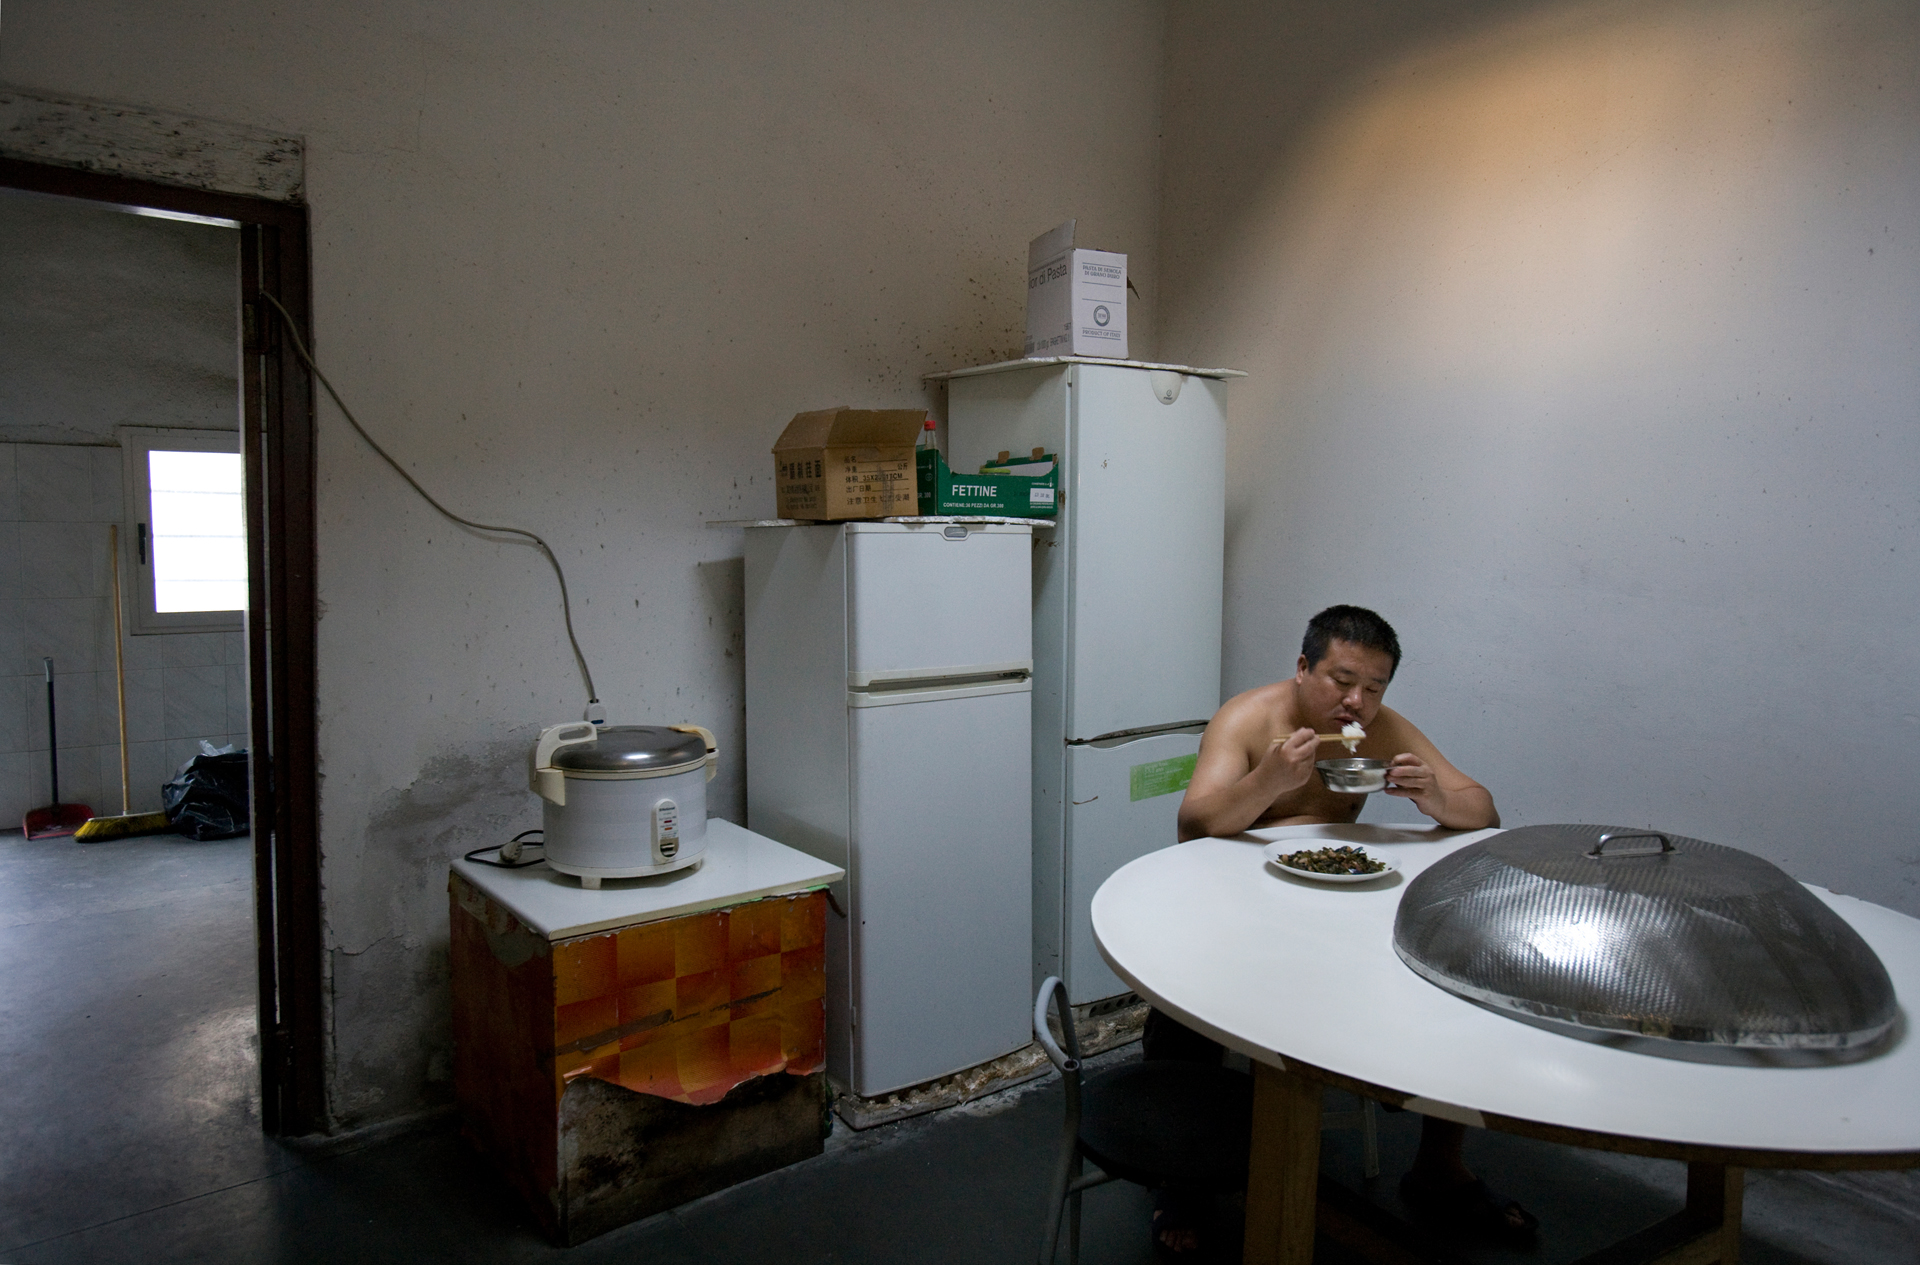 A Chinese laborer takes a break from the textile factory floor for a brief meal before returning to work.